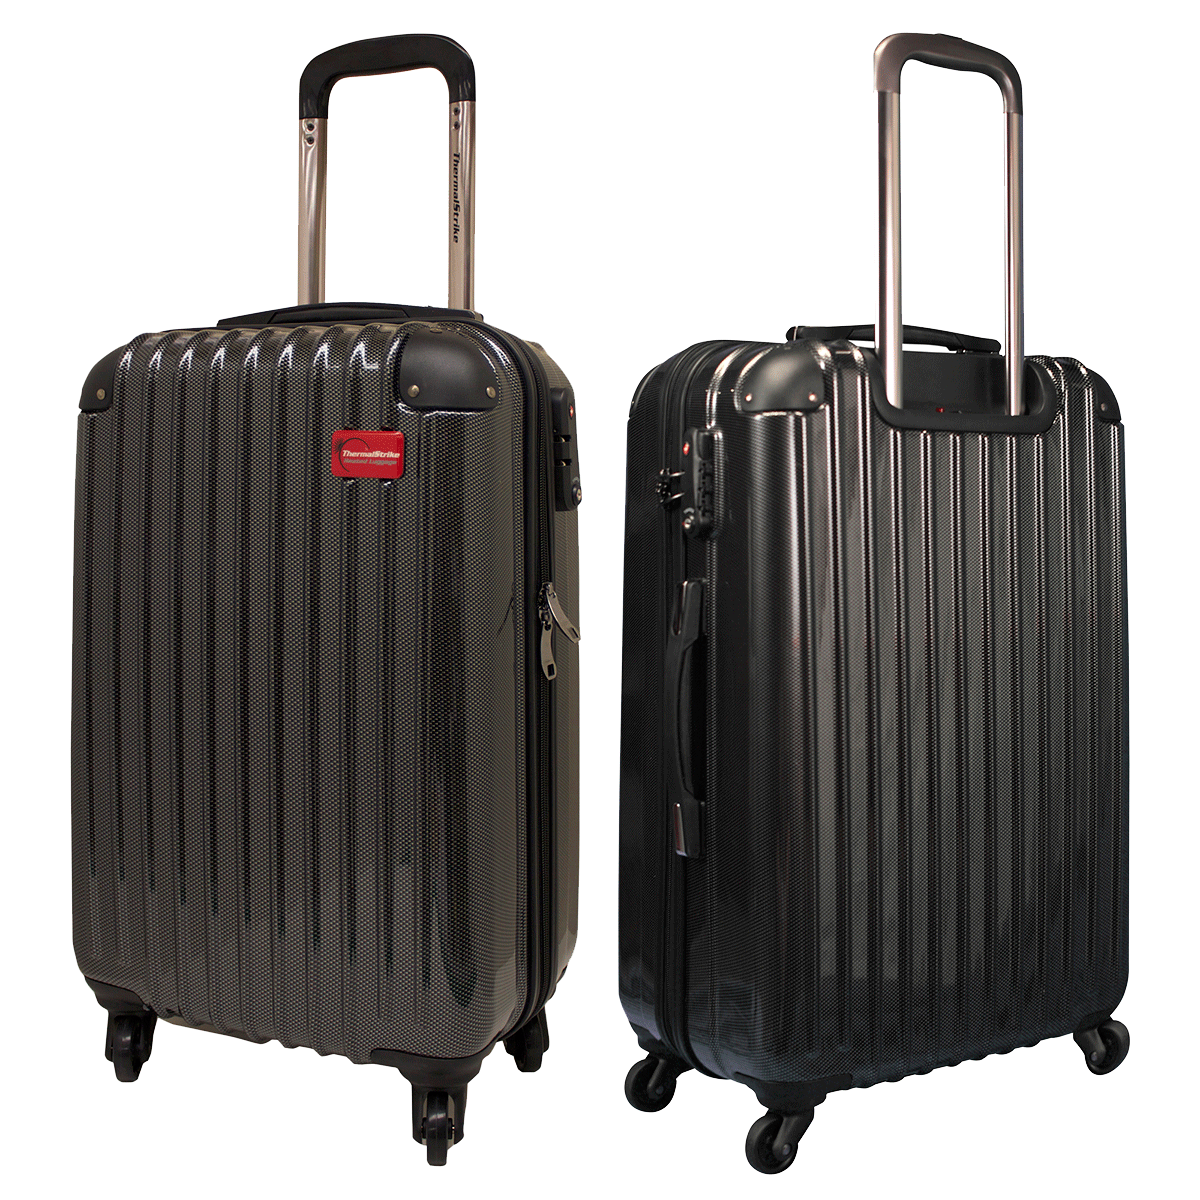 Luggage clipart 2 bag. Shiny black png image